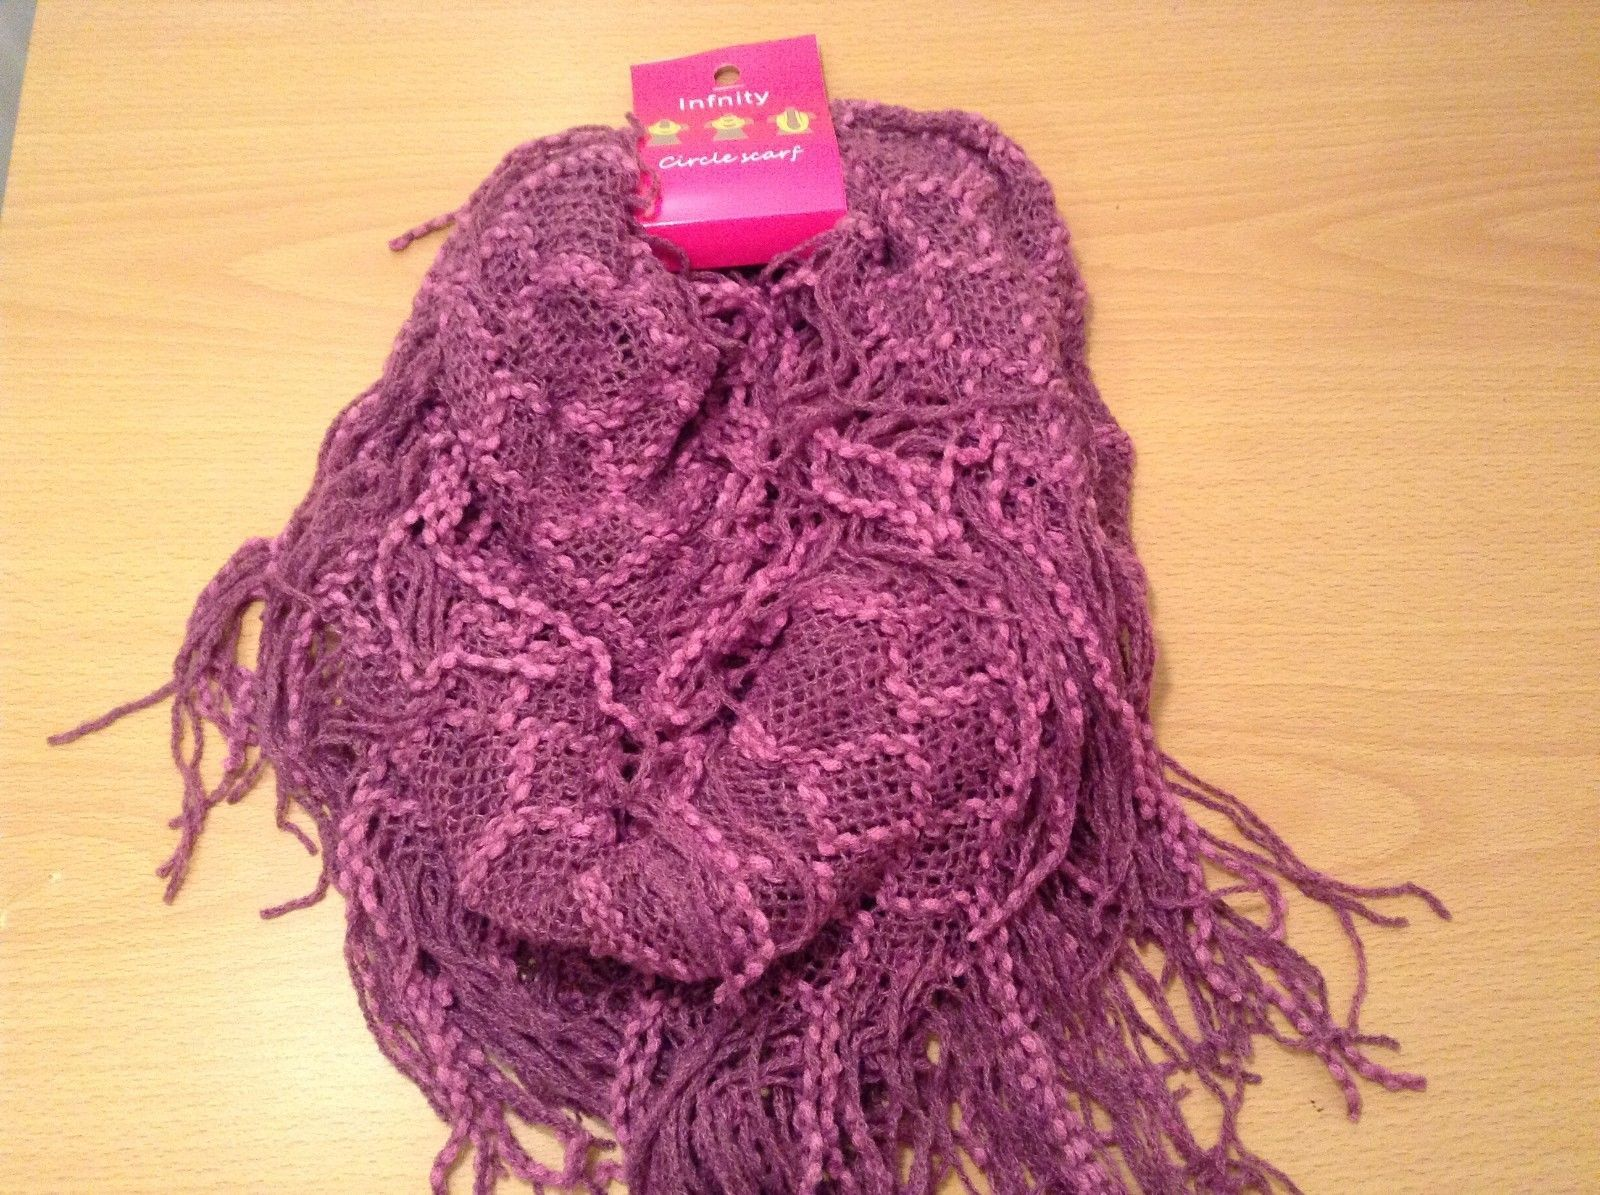 Honeycomb soft Fashion Infinity Scarf in choice of colors Perfect coat accent